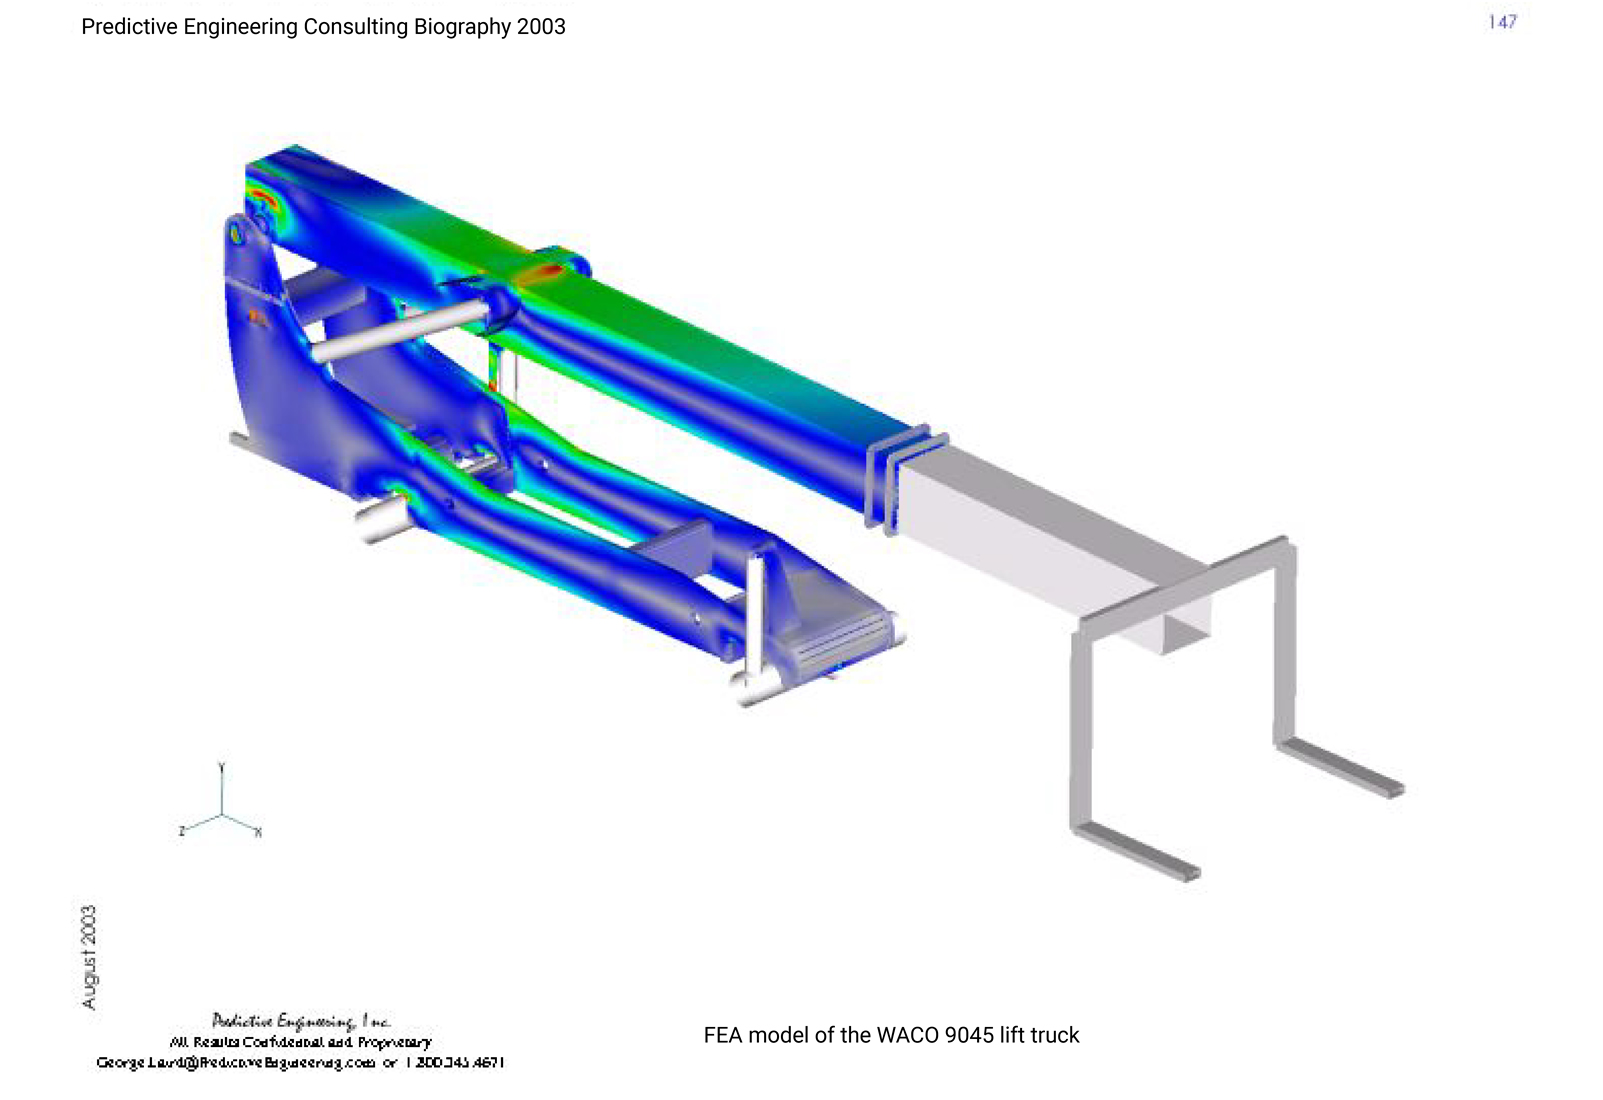 FEA model (Femap) of lift-truck with the boom in the carry position